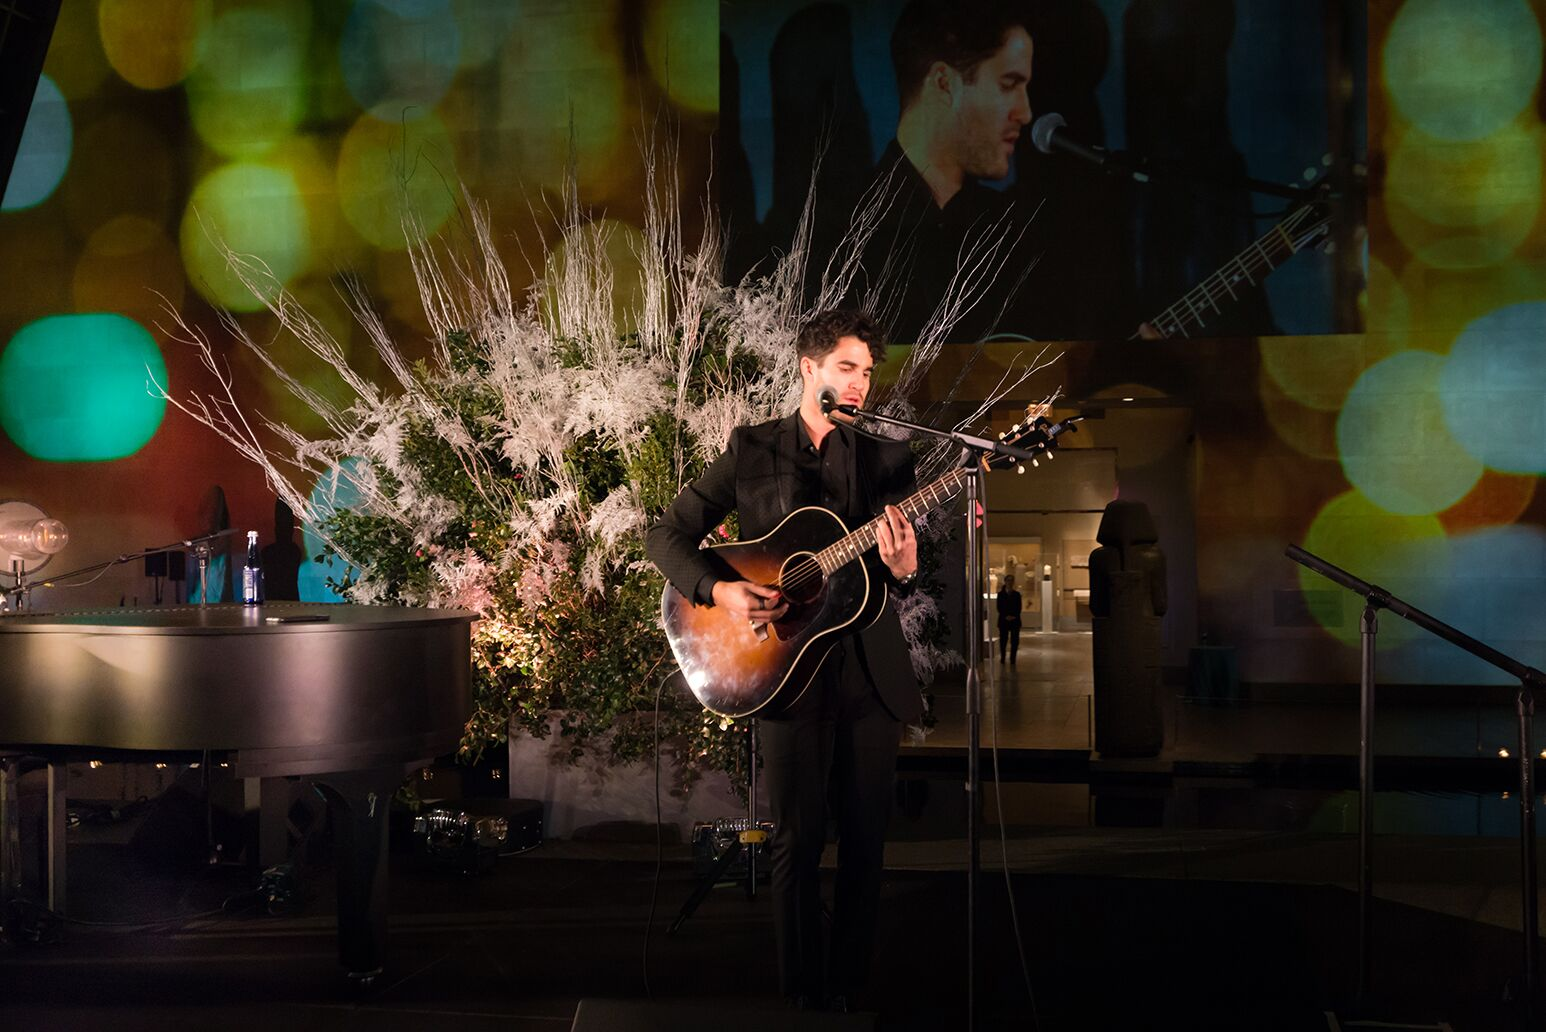 Darren Criss performs to more than 350 attendees at Northwell Health's Constellation Gala held at The Metropolitan Museum of Art in New York City.